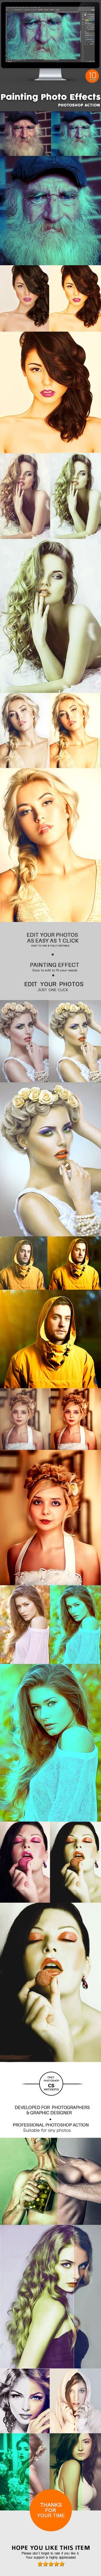 10 Painting Photo Effects  Photoshop Action — Photoshop ATN #light #effect • Available here → https://graphicriver.net/item/10-painting-photo-effects-photoshop-action/10814096?ref=pxcr